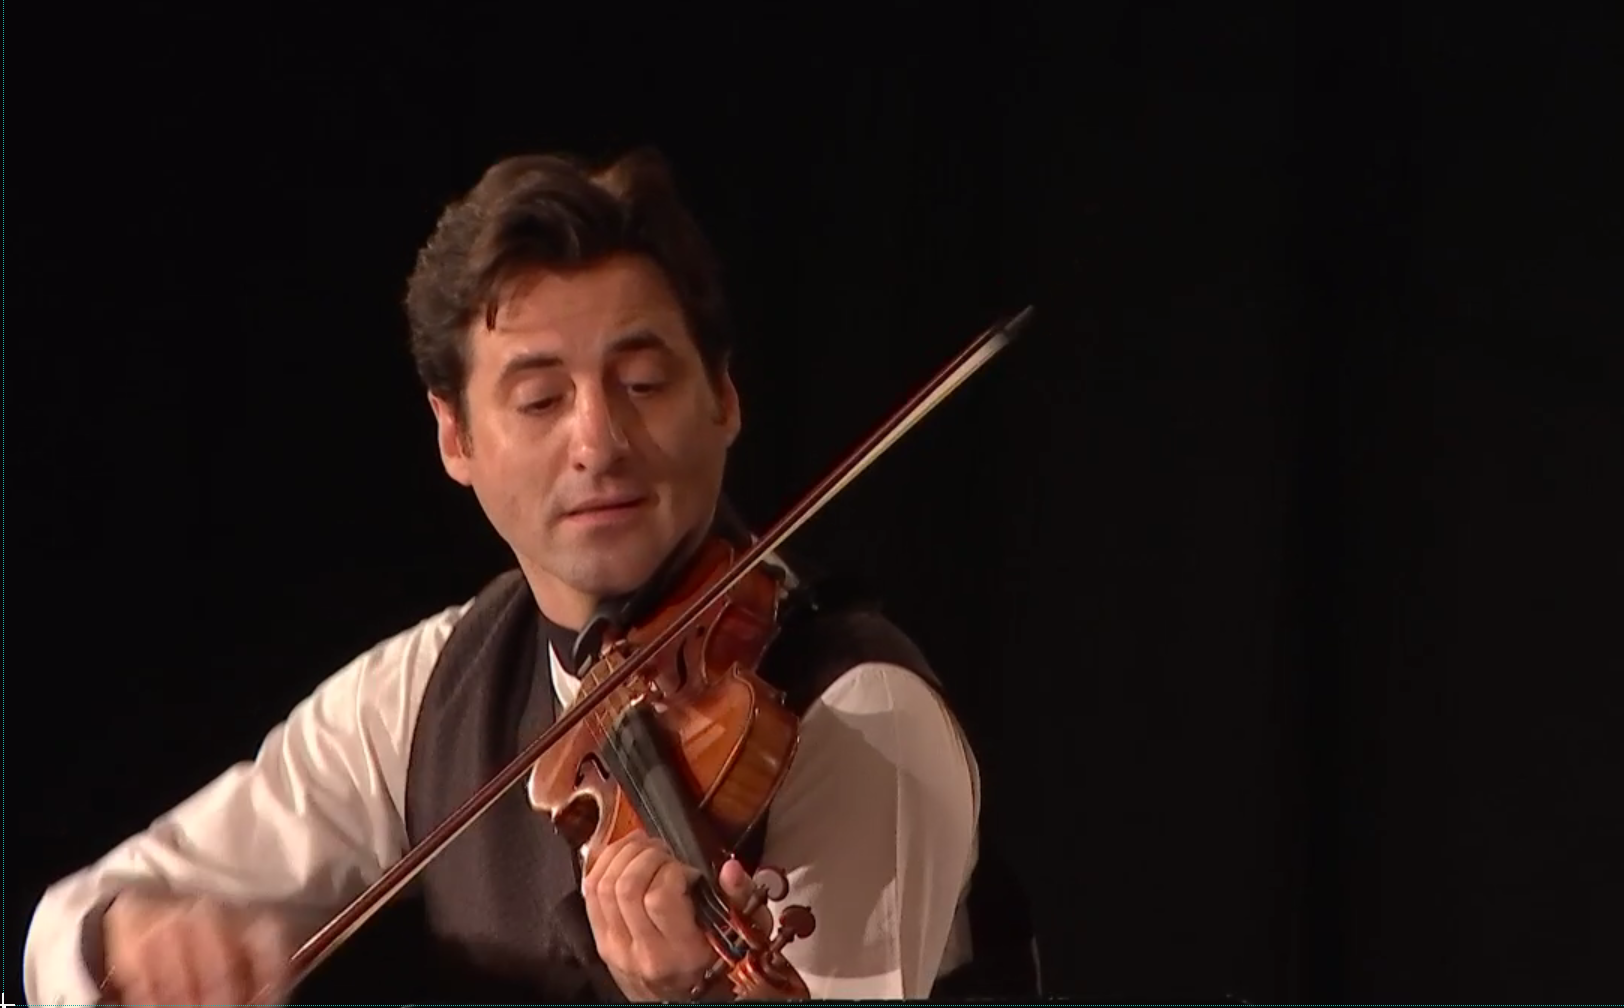 Philippe Quint and Julien Quentin play Leclair's Sonata for Violin and Piano No. 3 in D Major, Op. 9